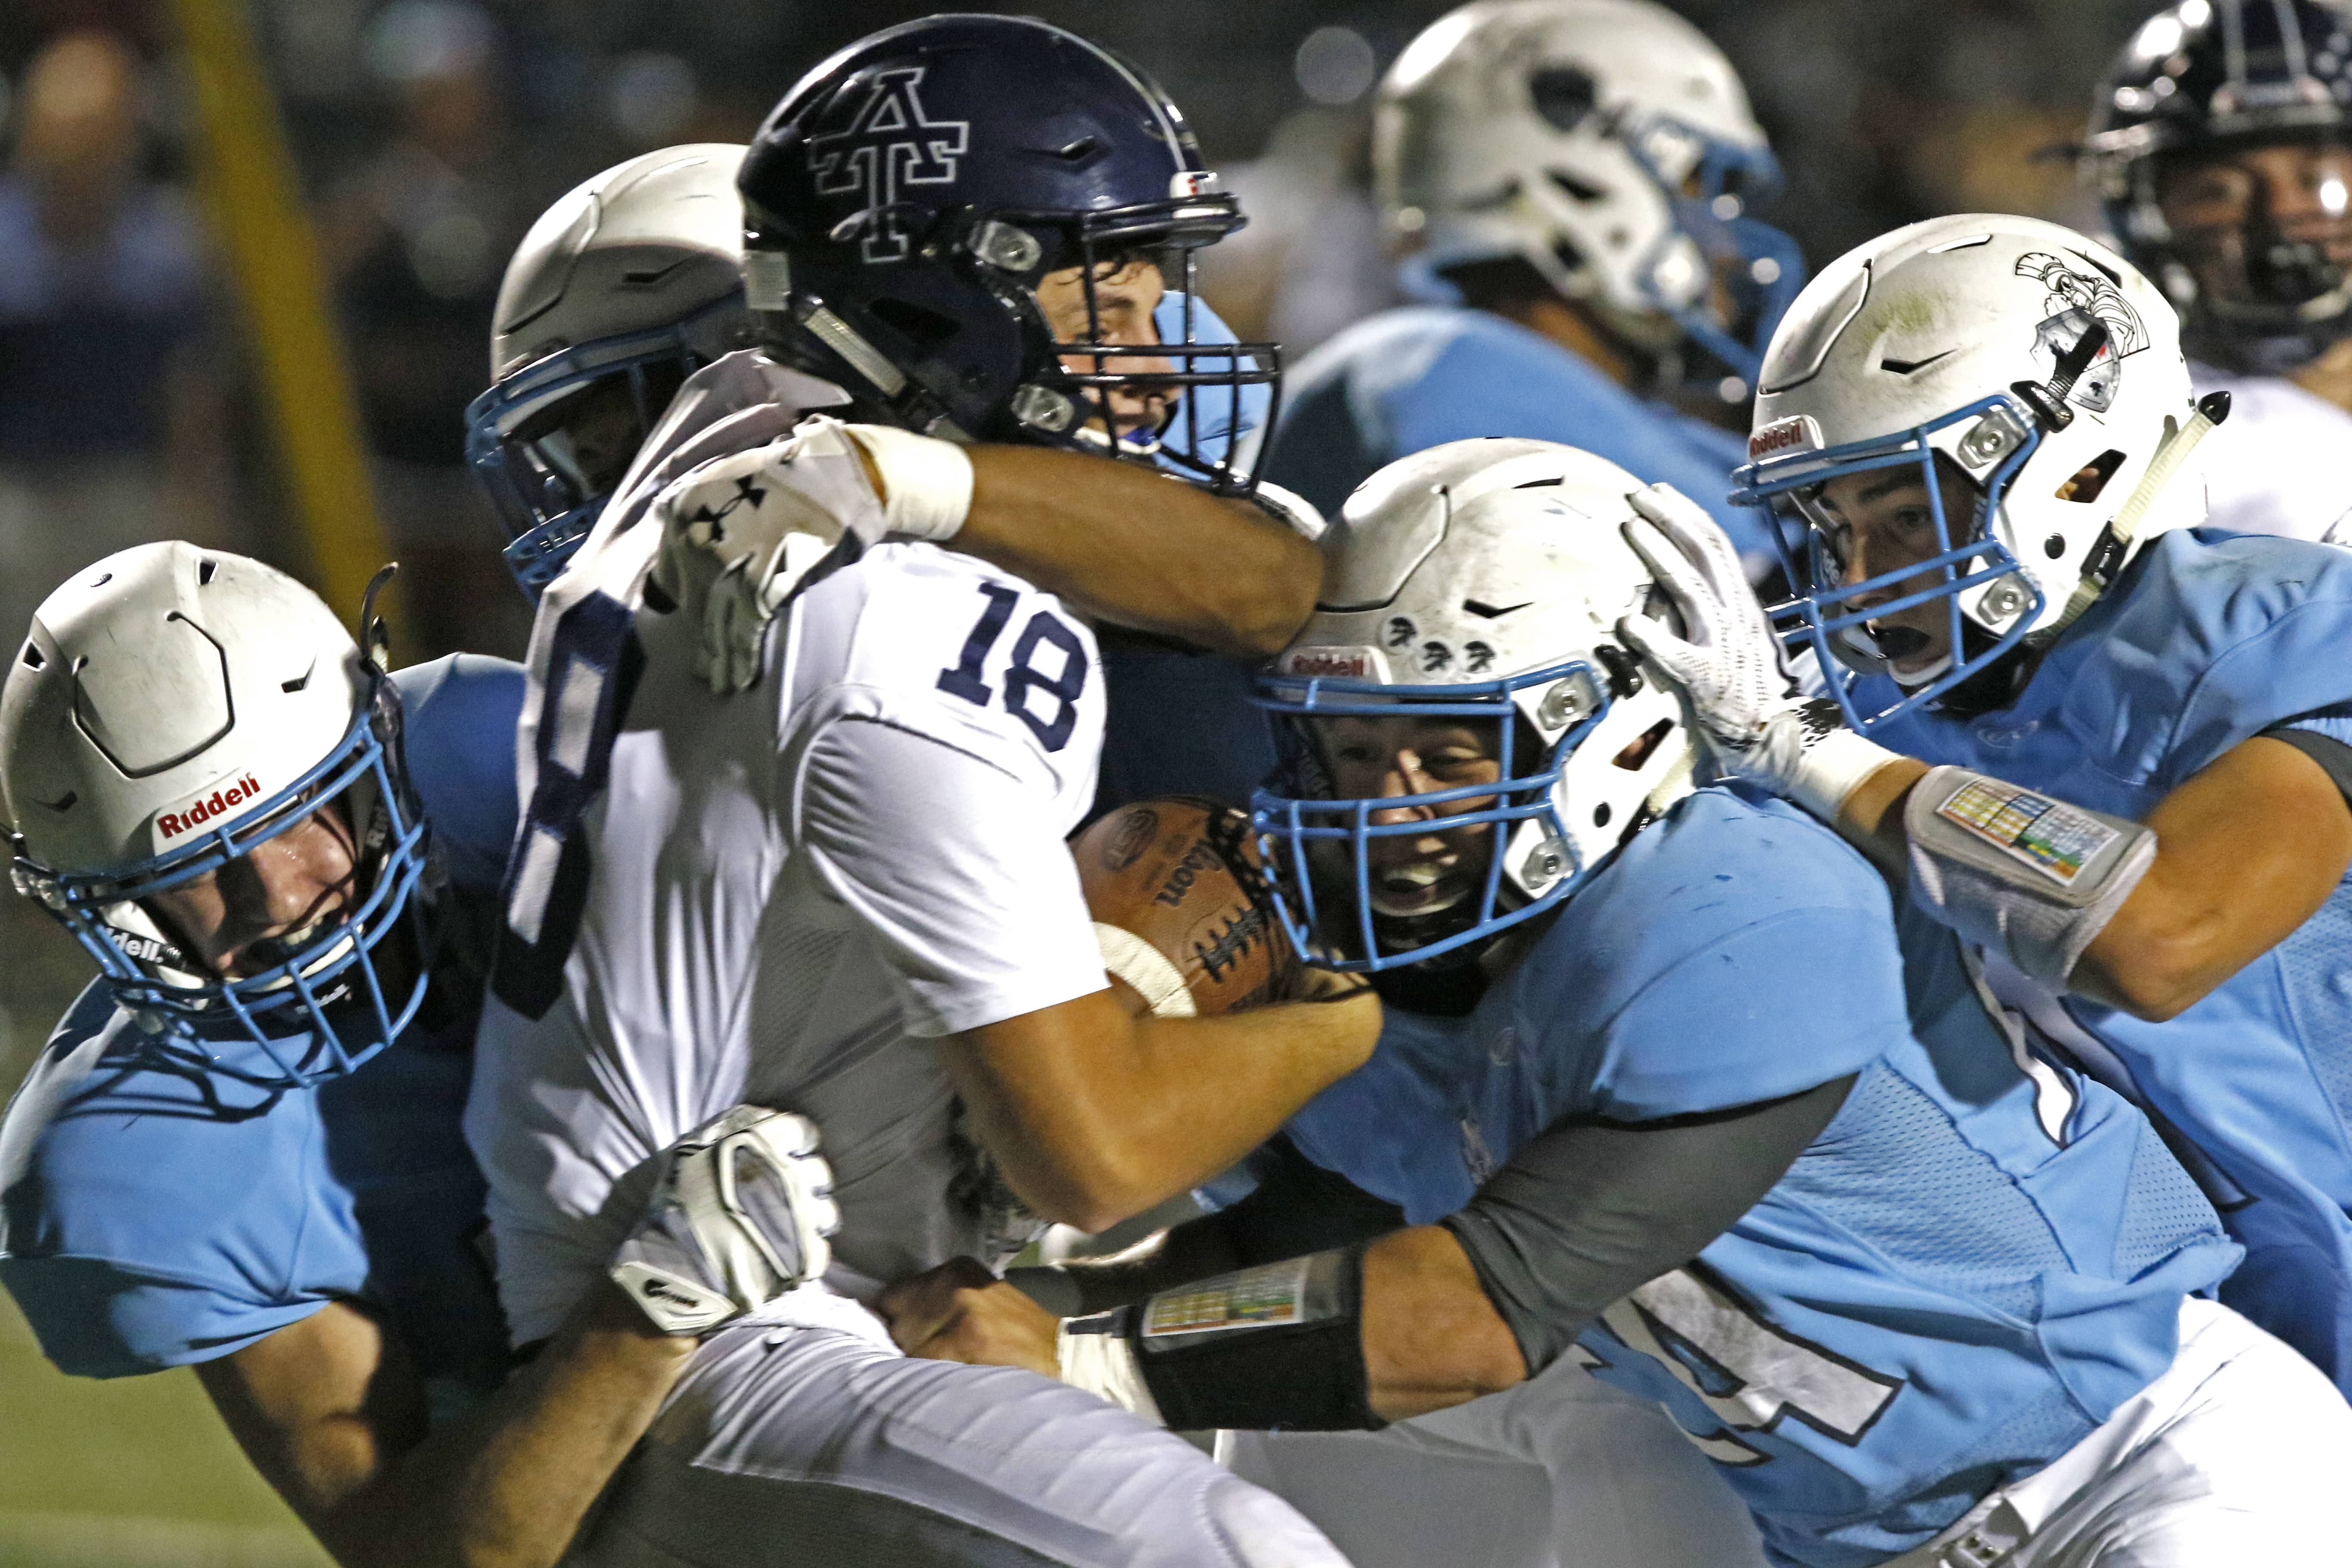 Addison Trail quarterback Nick Daudelin (18) is sacked near his endzone by four Wiilowbrook Warriors led by Jack Jessen, right, early in the first quarter, September 15, 2017, in Villa Park.